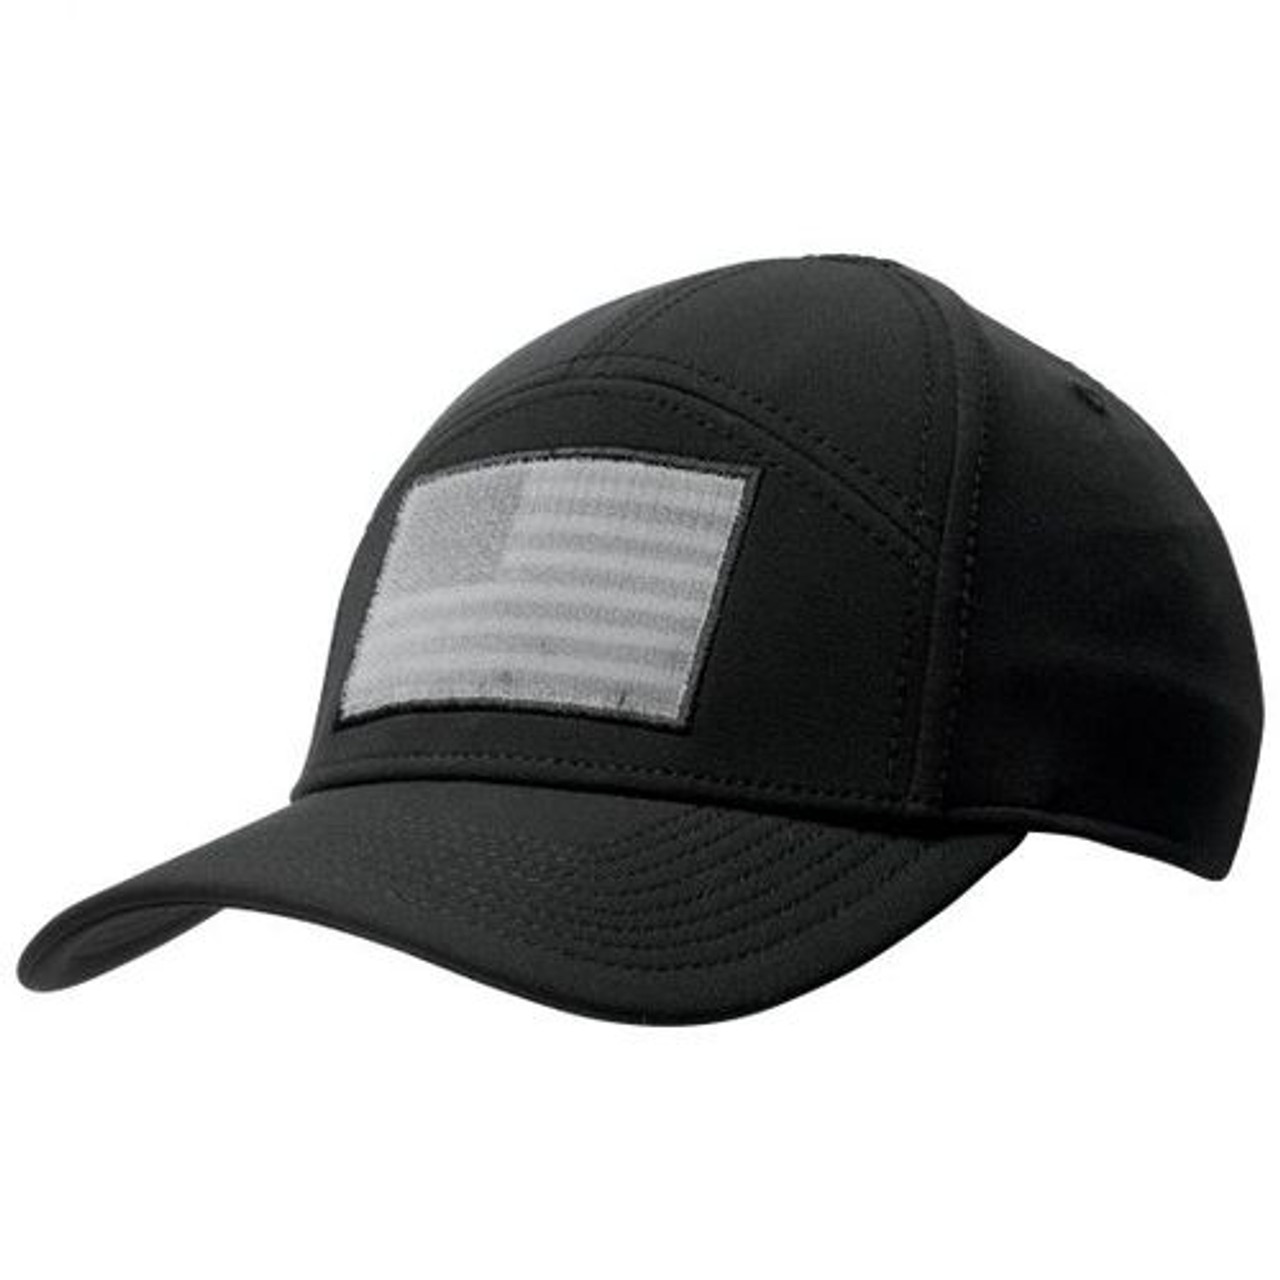 5.11 Tactical Operator 2.0 A-Flex Cap, available in Black, Storm, Marina, Eclipse, or Sage Green 89061